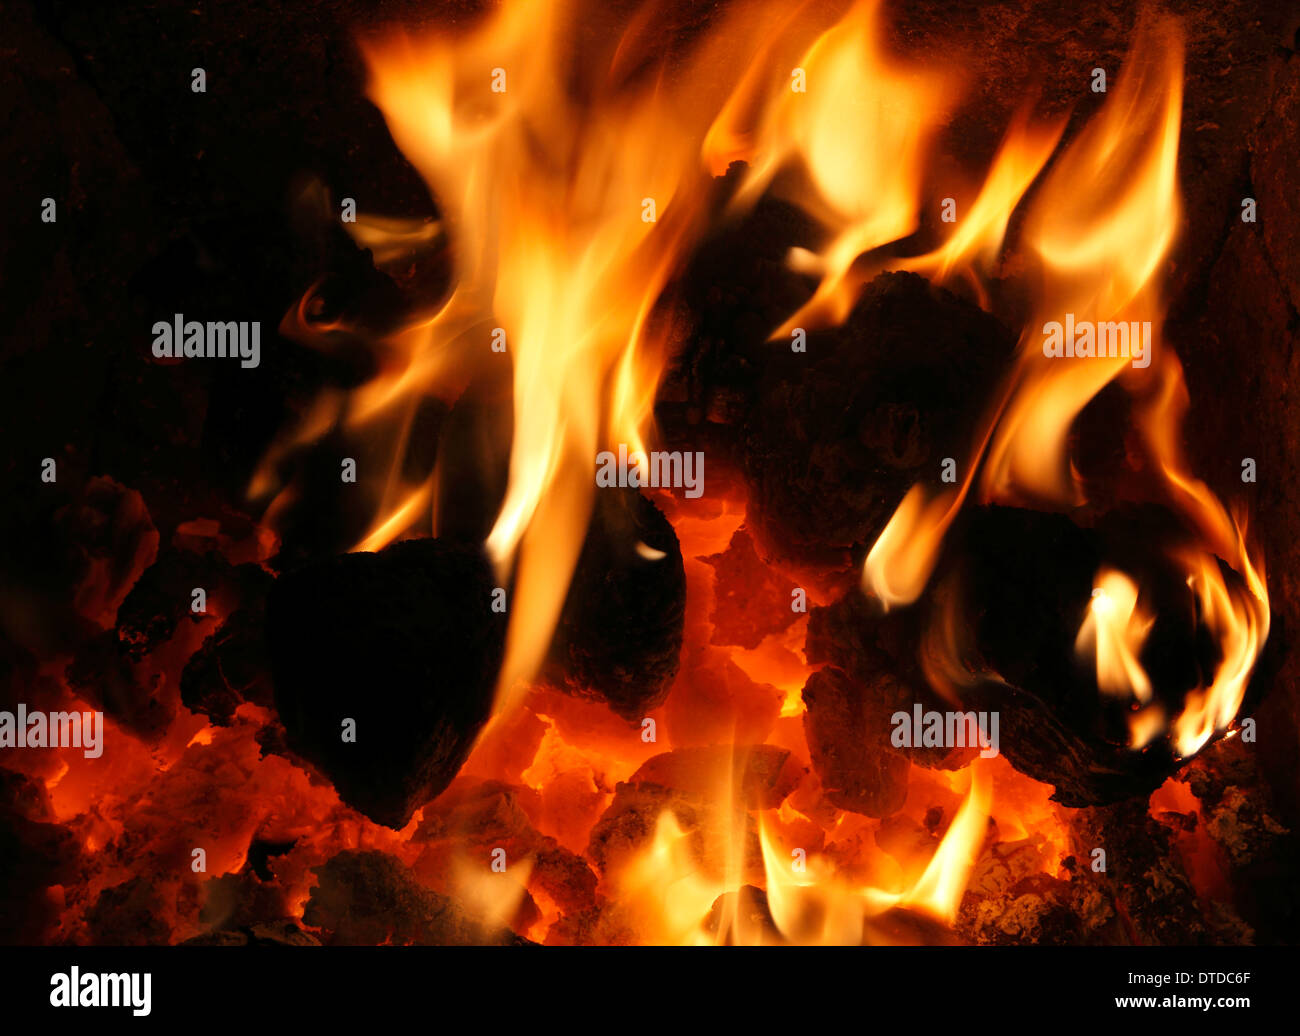 Solid Fuel, domestic coal Fire, burning, flame, flames, hearth, fireside, hea,t energy, power, fires, warmth, warm, - Stock Image